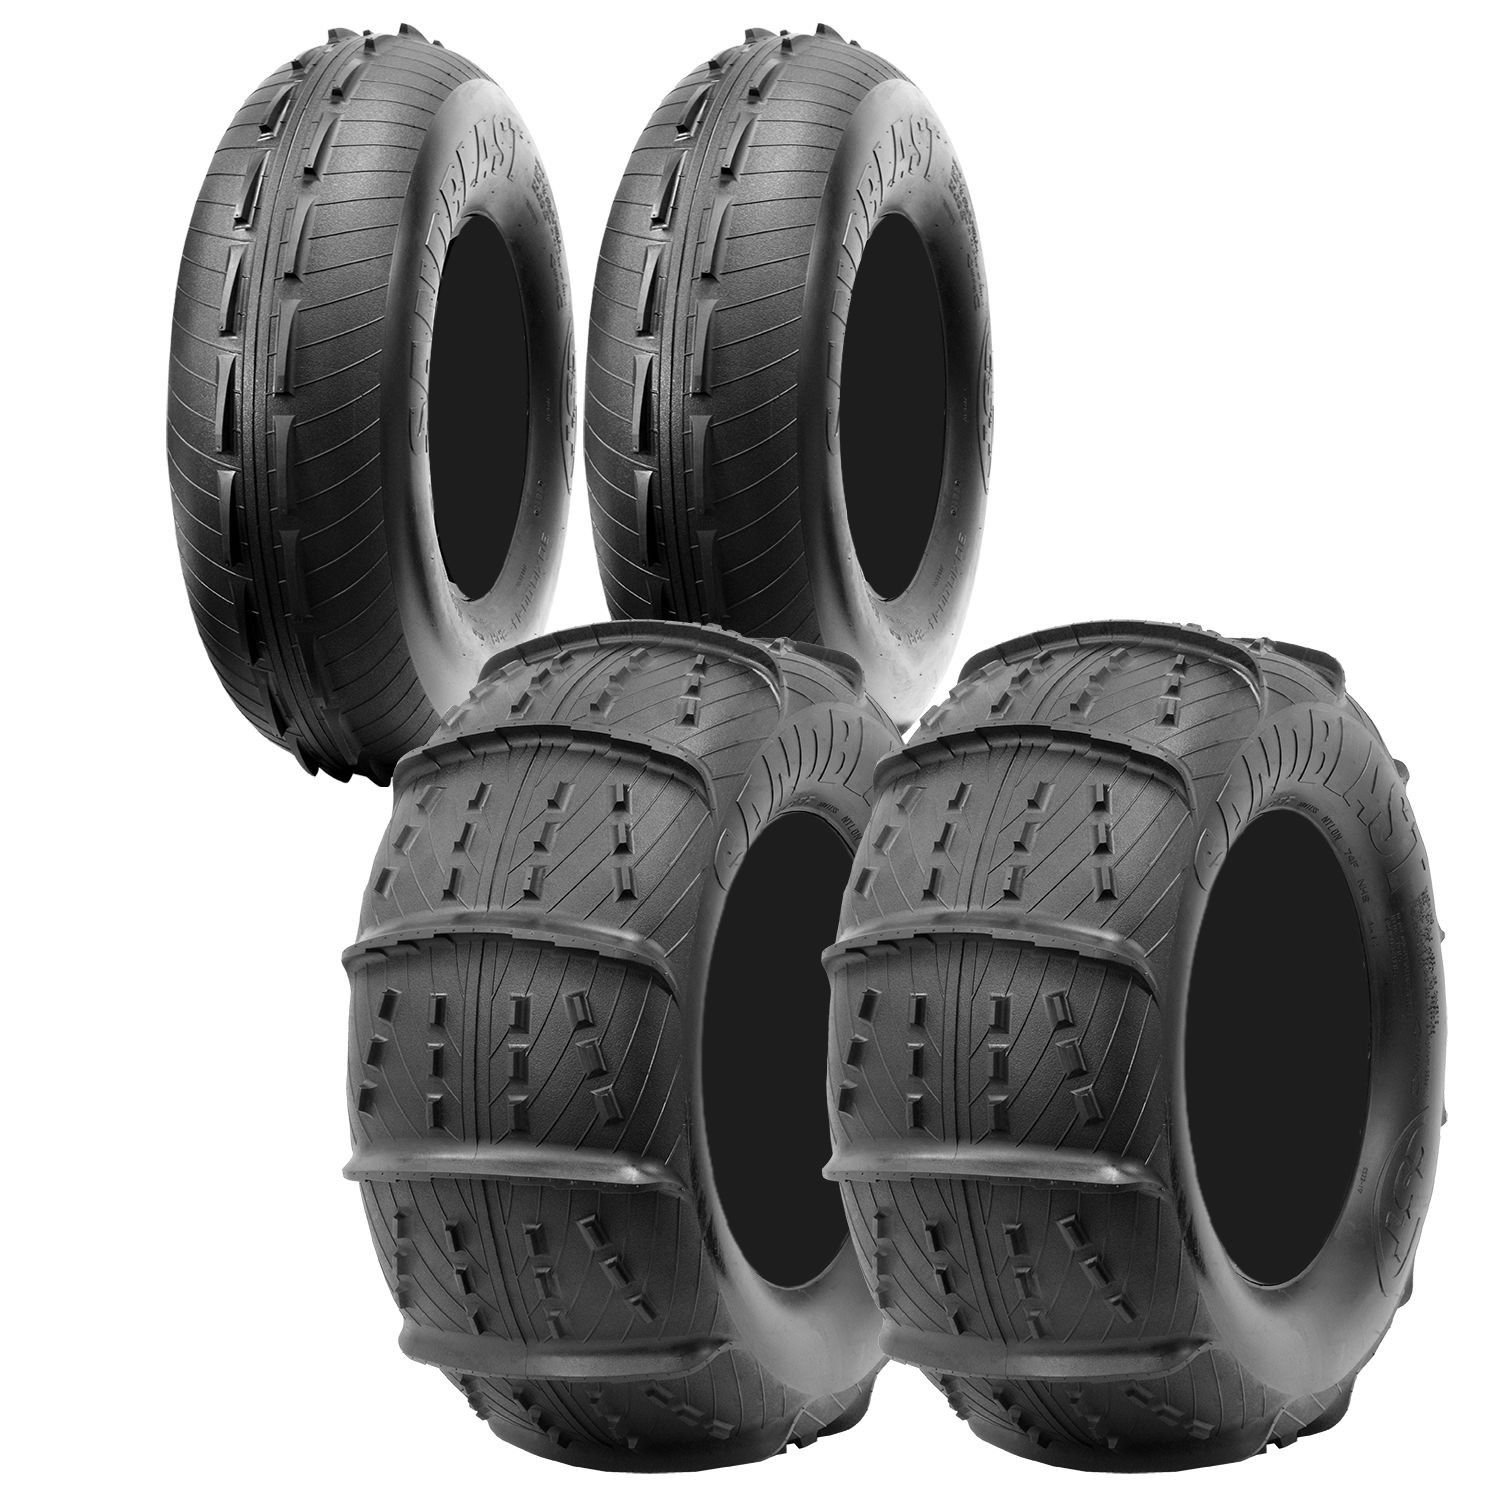 CST Sandblast 28'' Complete Front and Rear UTV Sand Tire Package- 28x10-14, 28x12-14